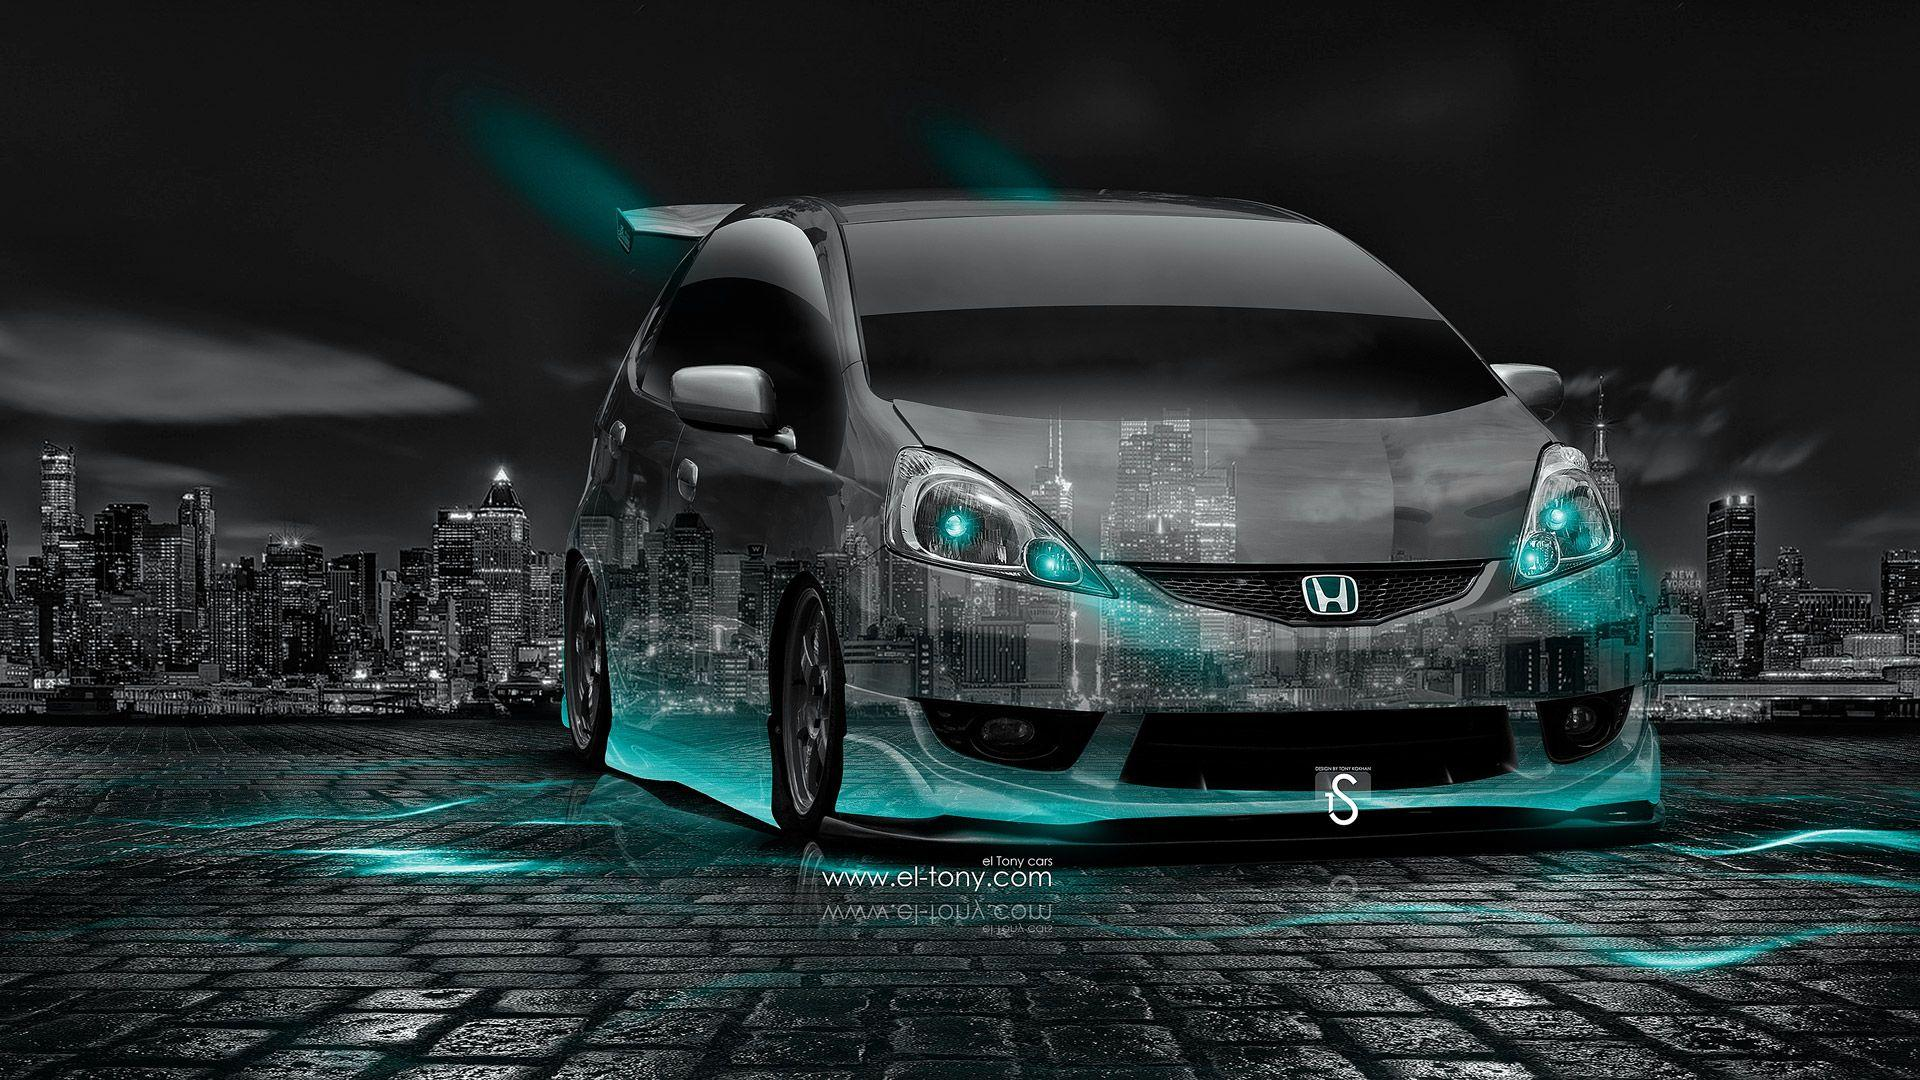 Honda Fit RS JDM Tuning Crystal City Car 2014